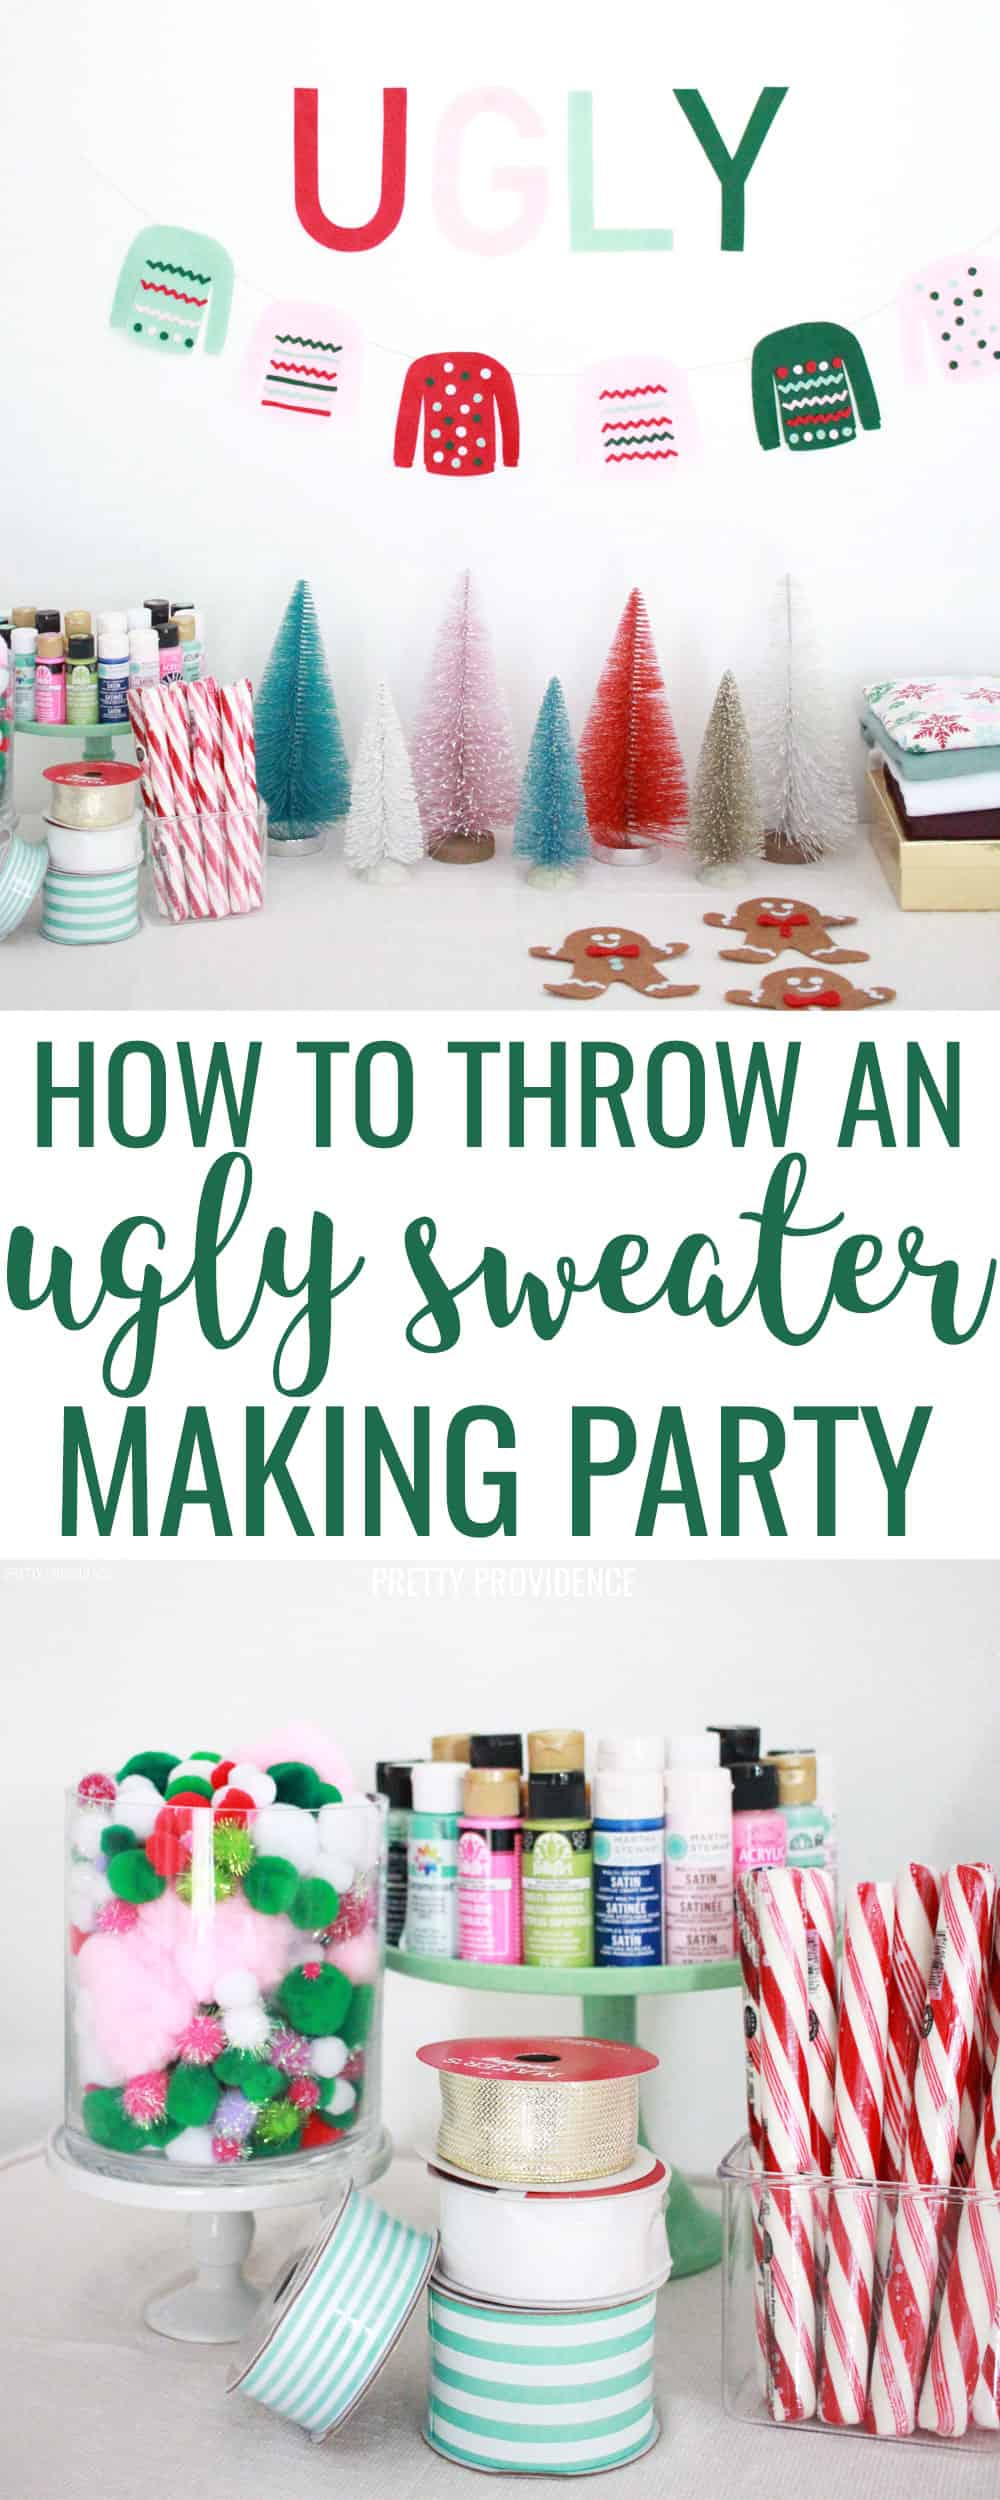 Tons of fun homemade ugly sweater party ideas, decorations and supplies! Making DIY ugly sweaters is more fun with friends! 